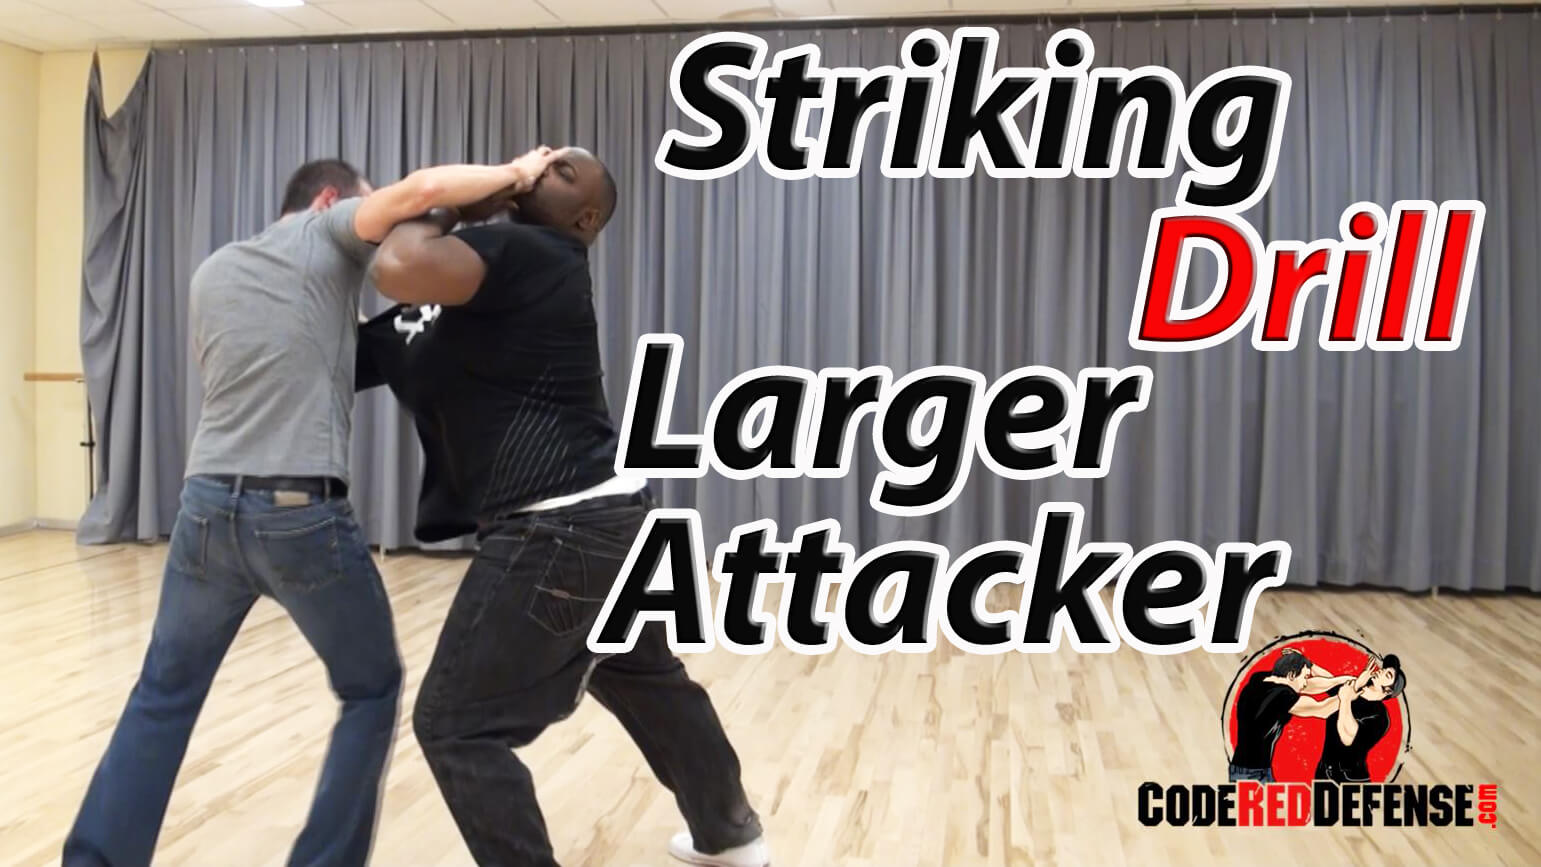 The best striking drill against a larger attacker